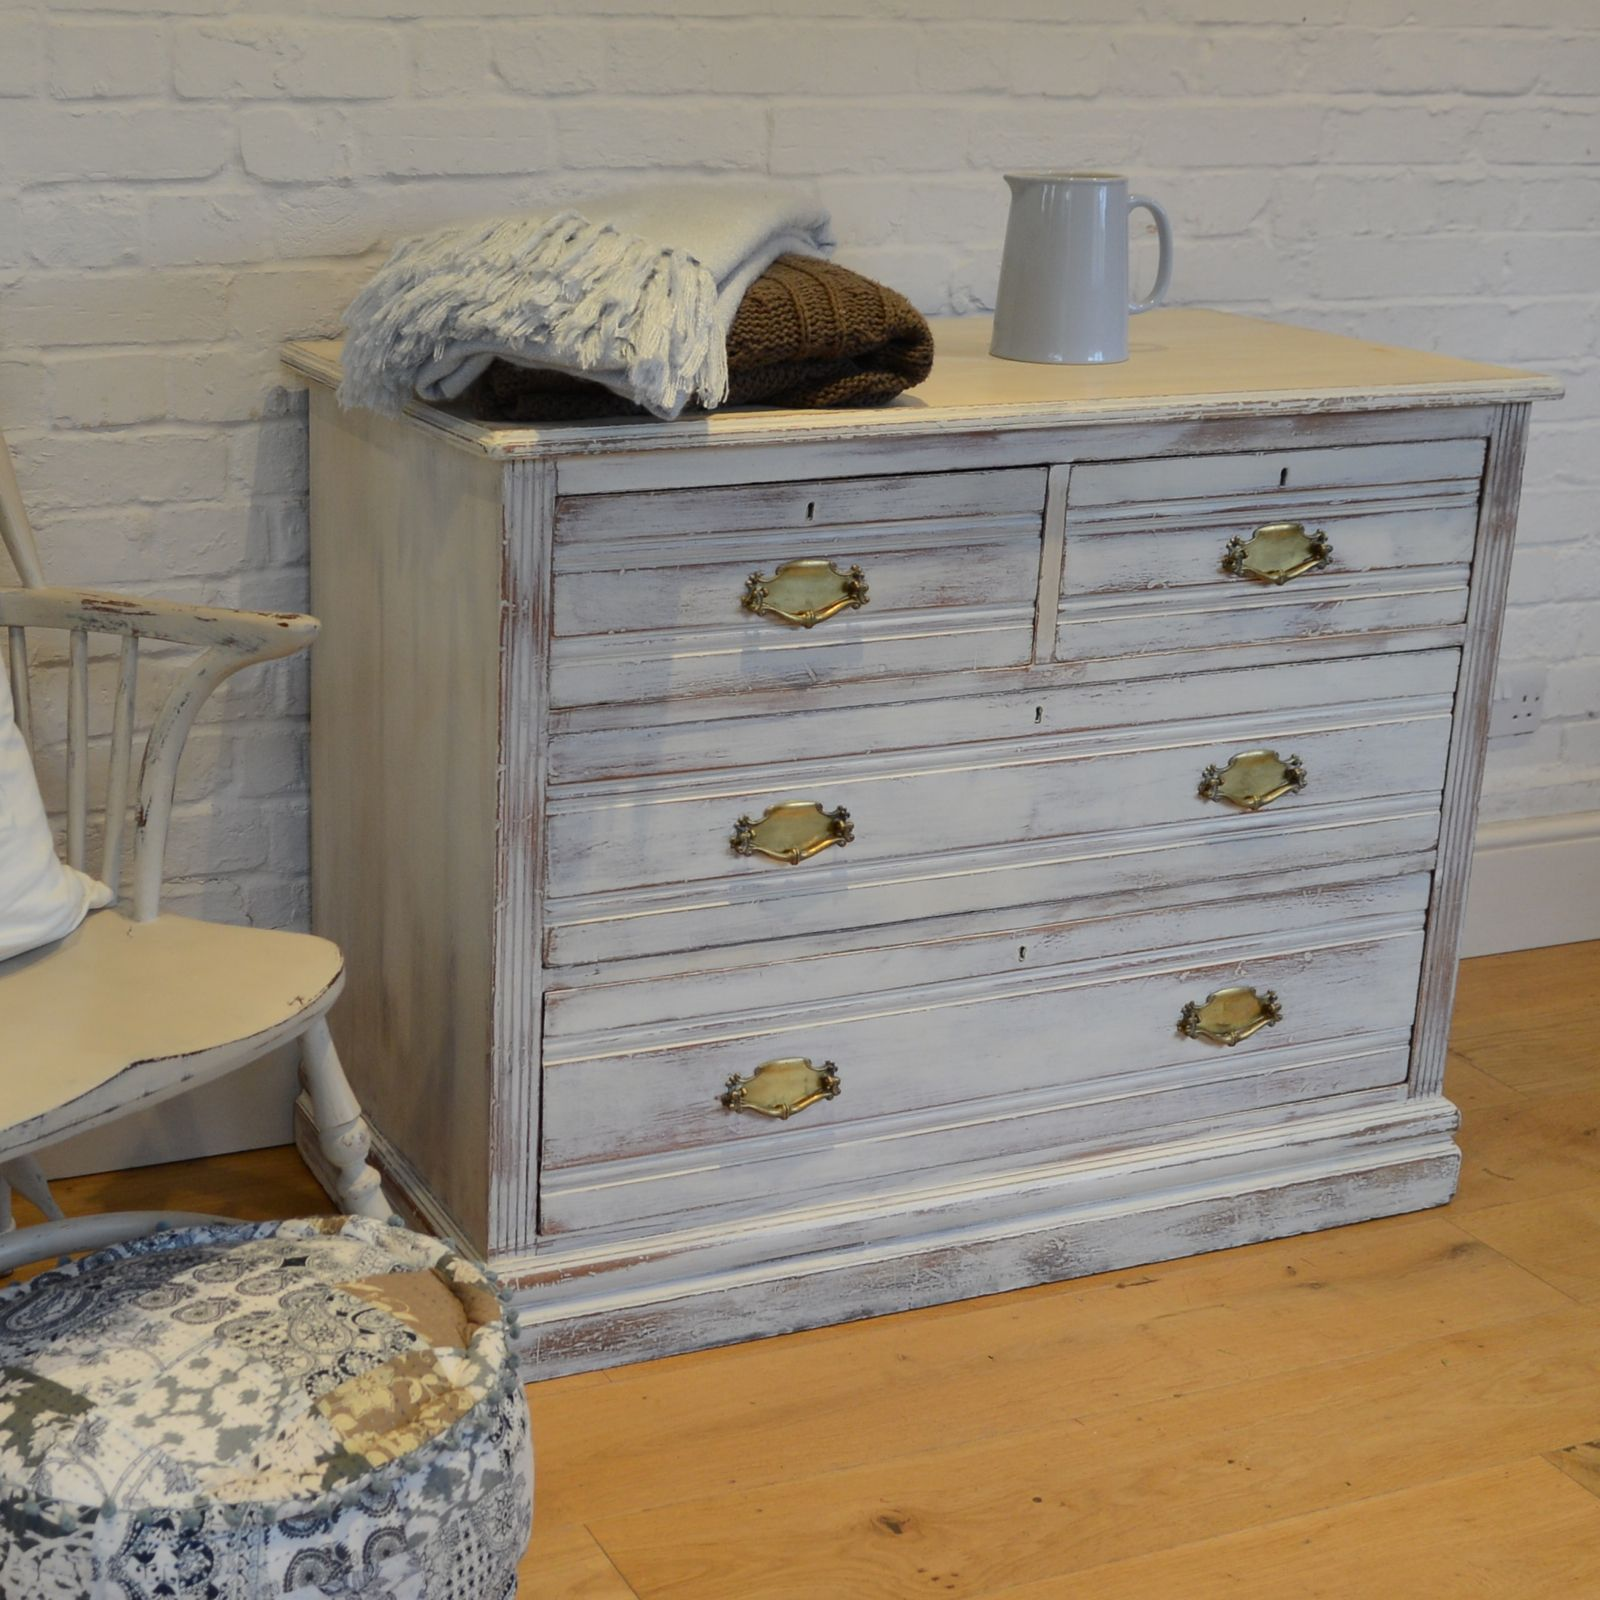 Substantial Edwardian chest of drawers painted in Annie Sloan's Original, heavily distressed and waxed. Available from Charlotte Jones Interiors.